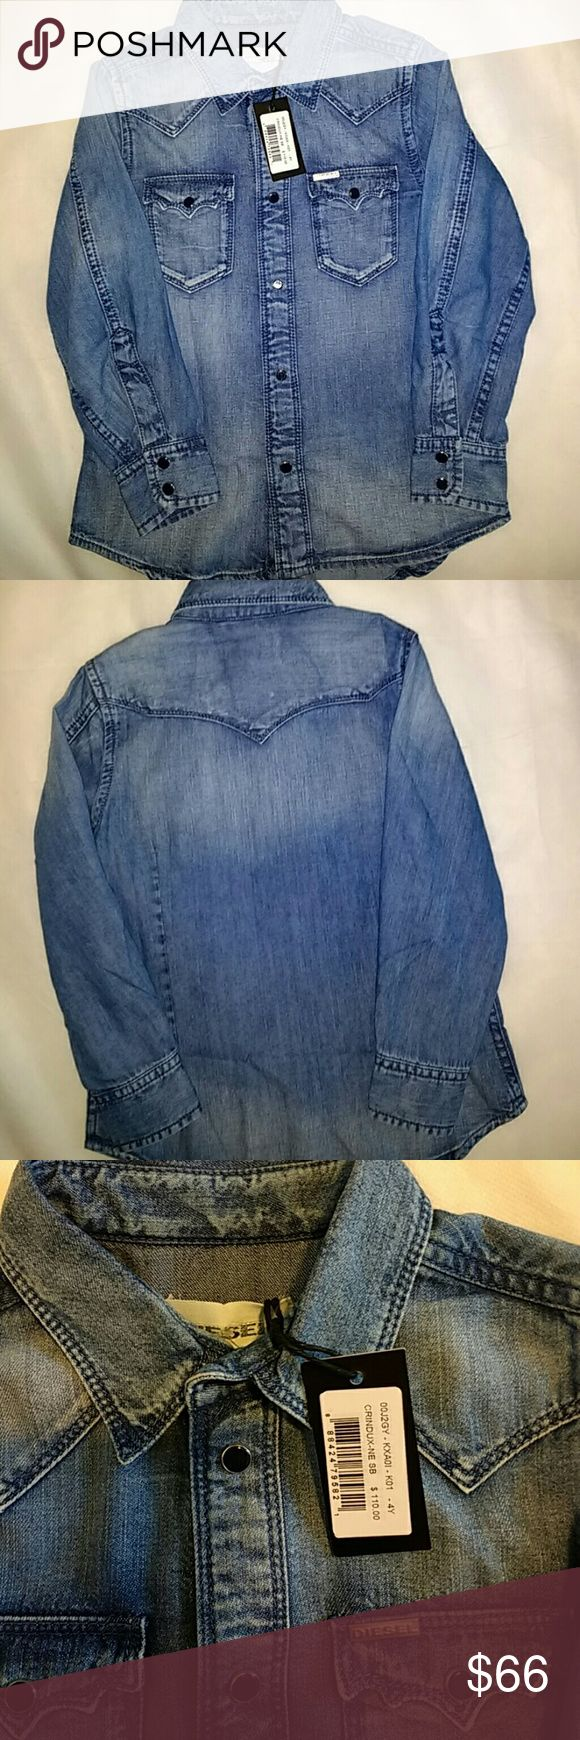 Diesel denim shirt girls 4years Must have piece in the closet denim diesel shirt girls 4years can be paired with black leggings. Diesel Shirts & Tops Button Down Shirts